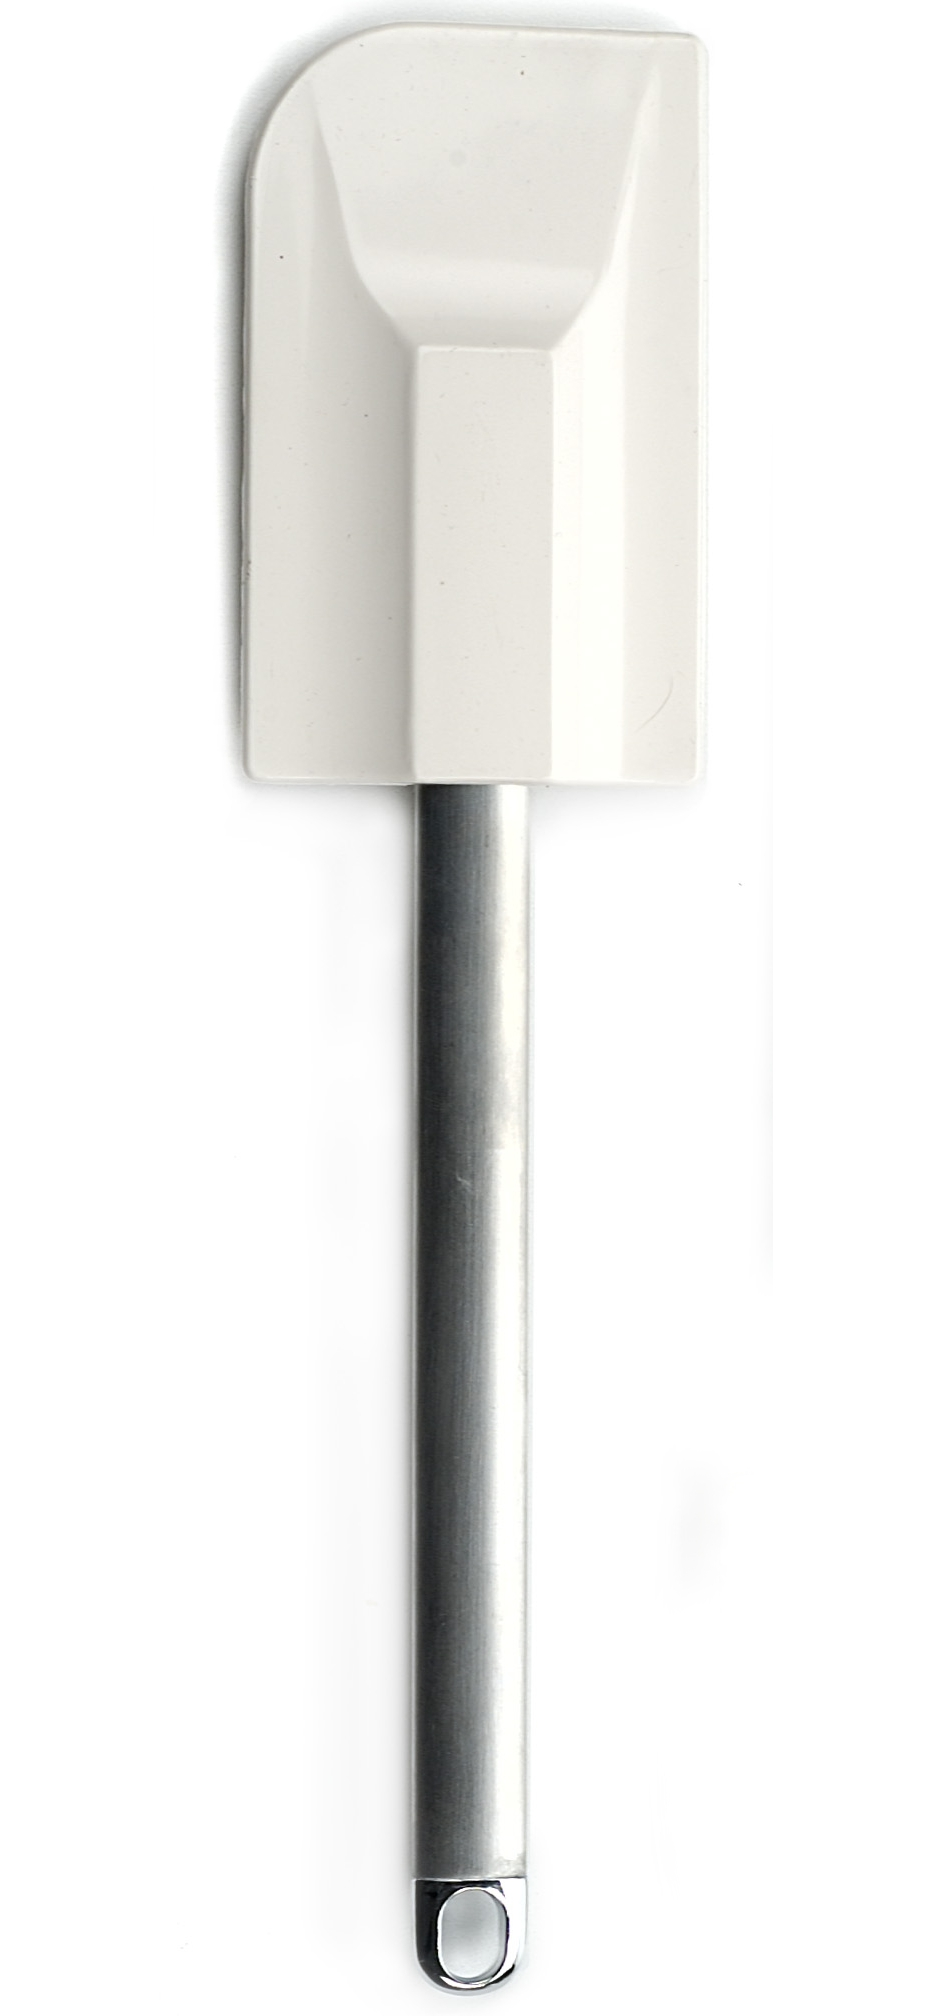 RSVP Large White Silicone Spatula with Stainless Steel Handle